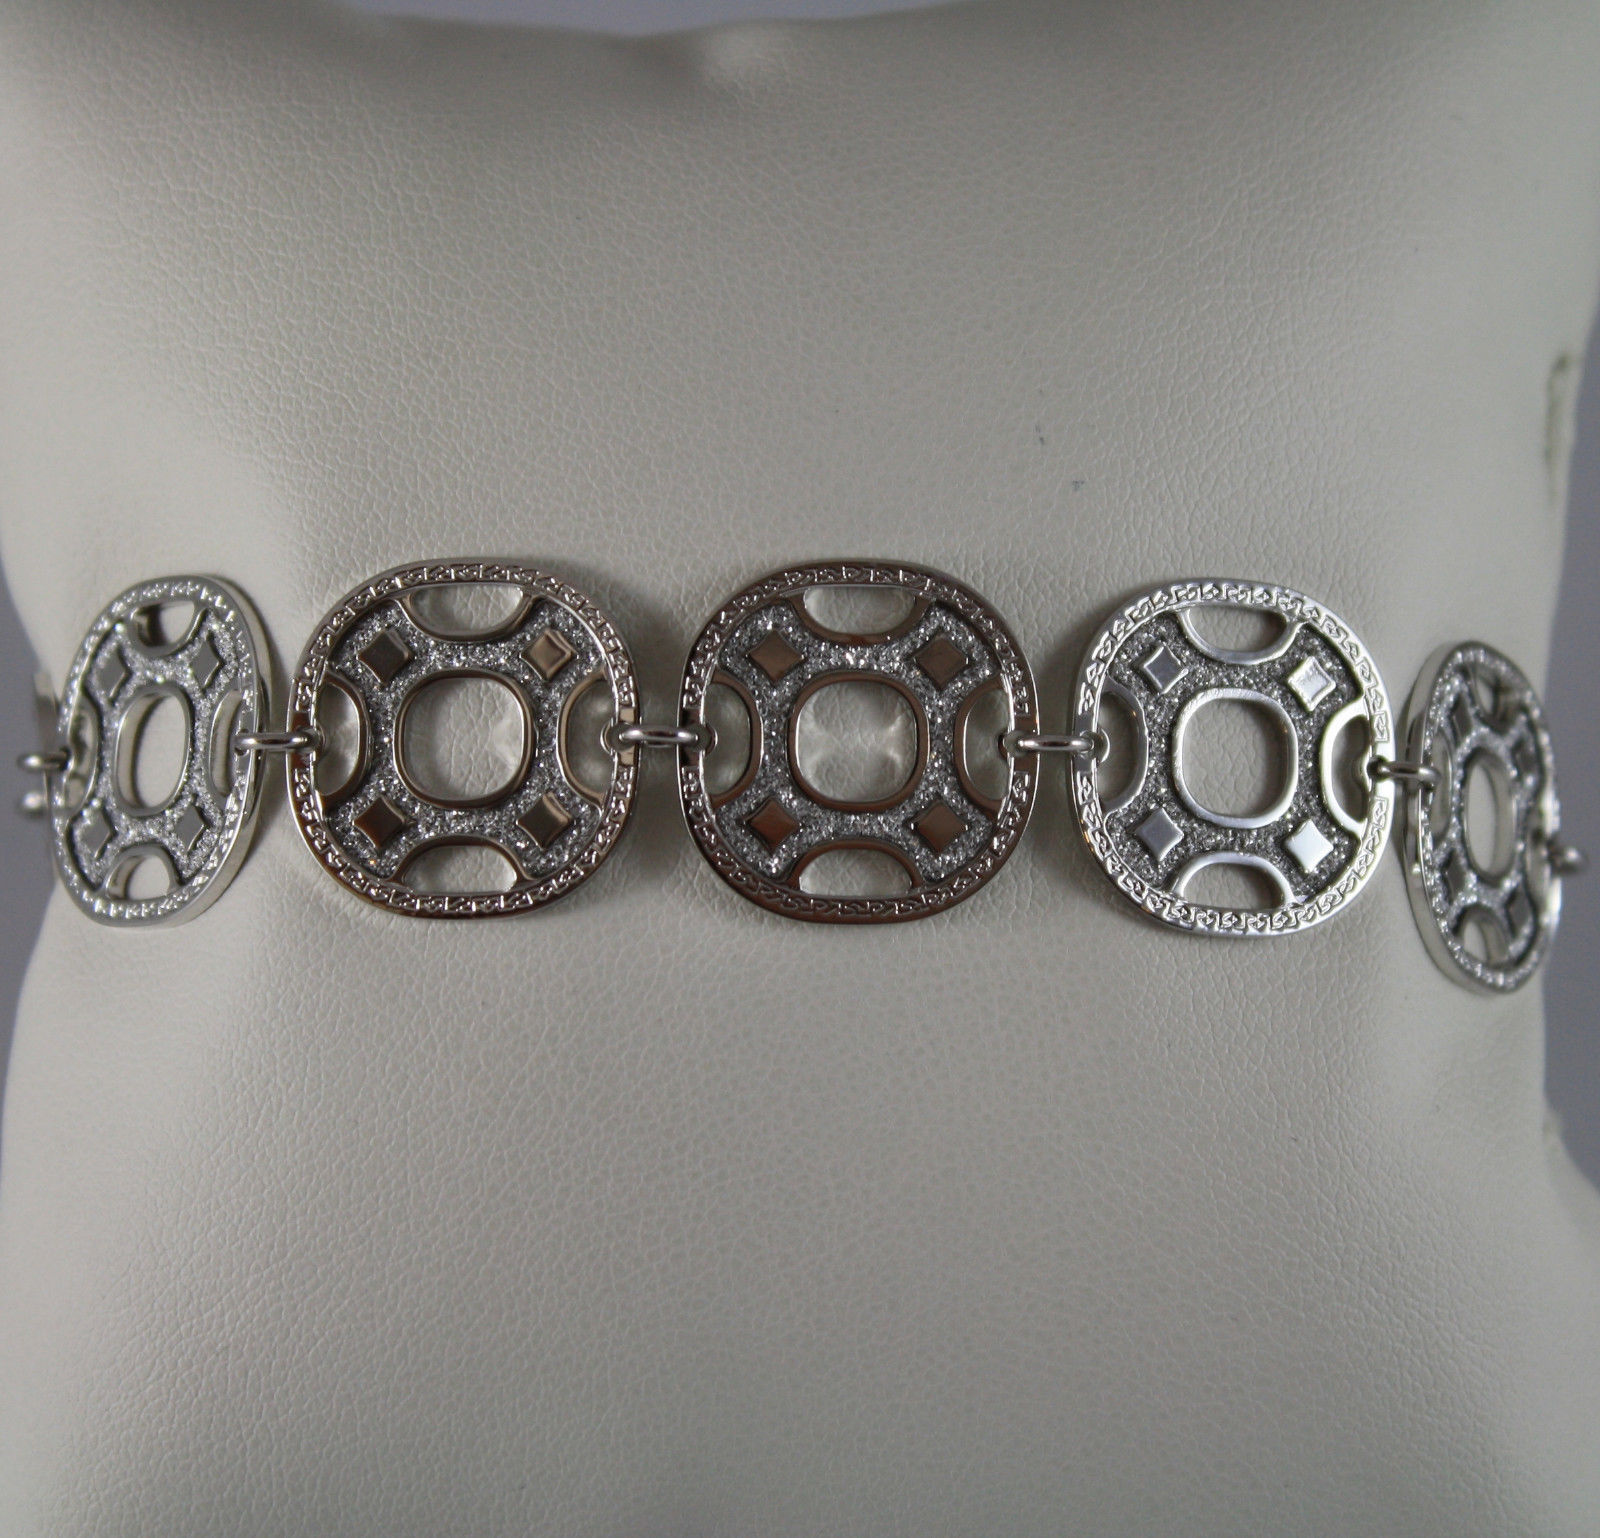 RHODIUM PLATED BRONZE REBECCA BRACELET WITH SQUARES B70BBB07 LENGTH 8,27 IN